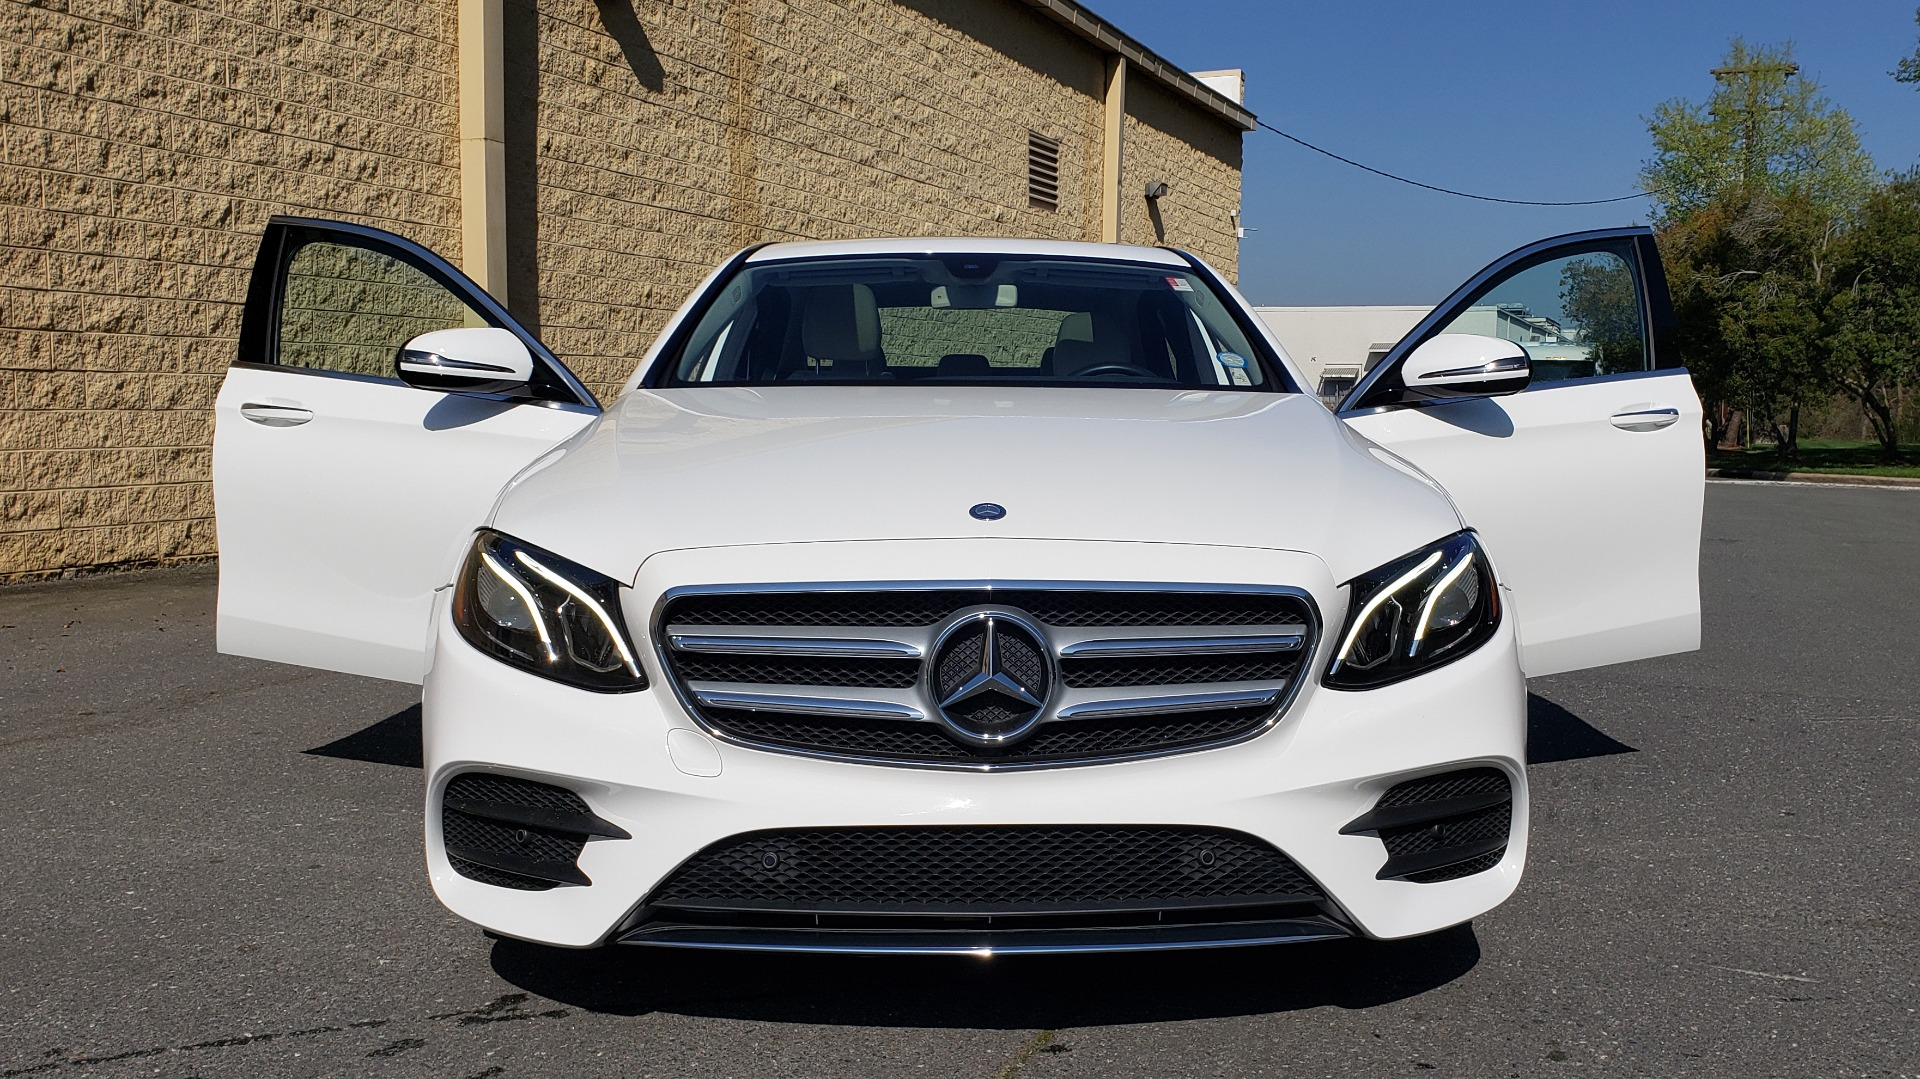 Used 2017 Mercedes-Benz E-Class E 300 PREMIUM / RWD / NAV / SNF / PARKING PILOT / REARVIEW / BURMESTER for sale Sold at Formula Imports in Charlotte NC 28227 20